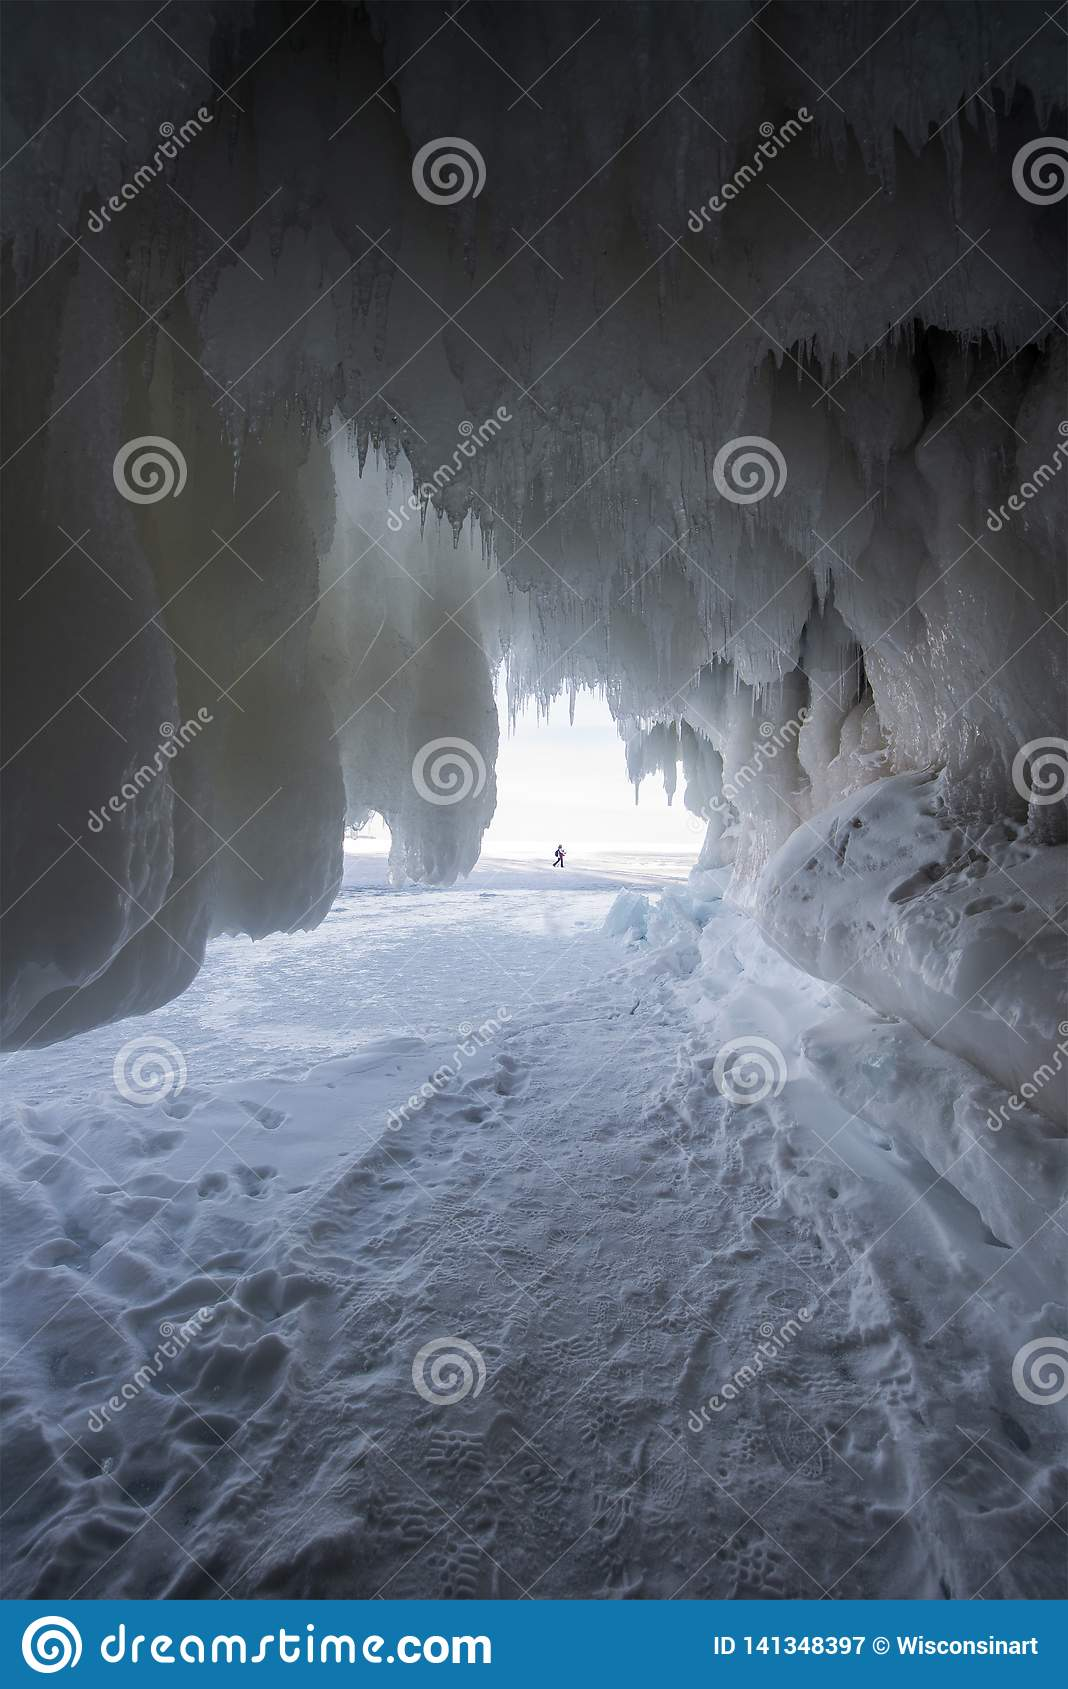 Apostle Islands Ice Caves, Winter, Travel Wisconsin